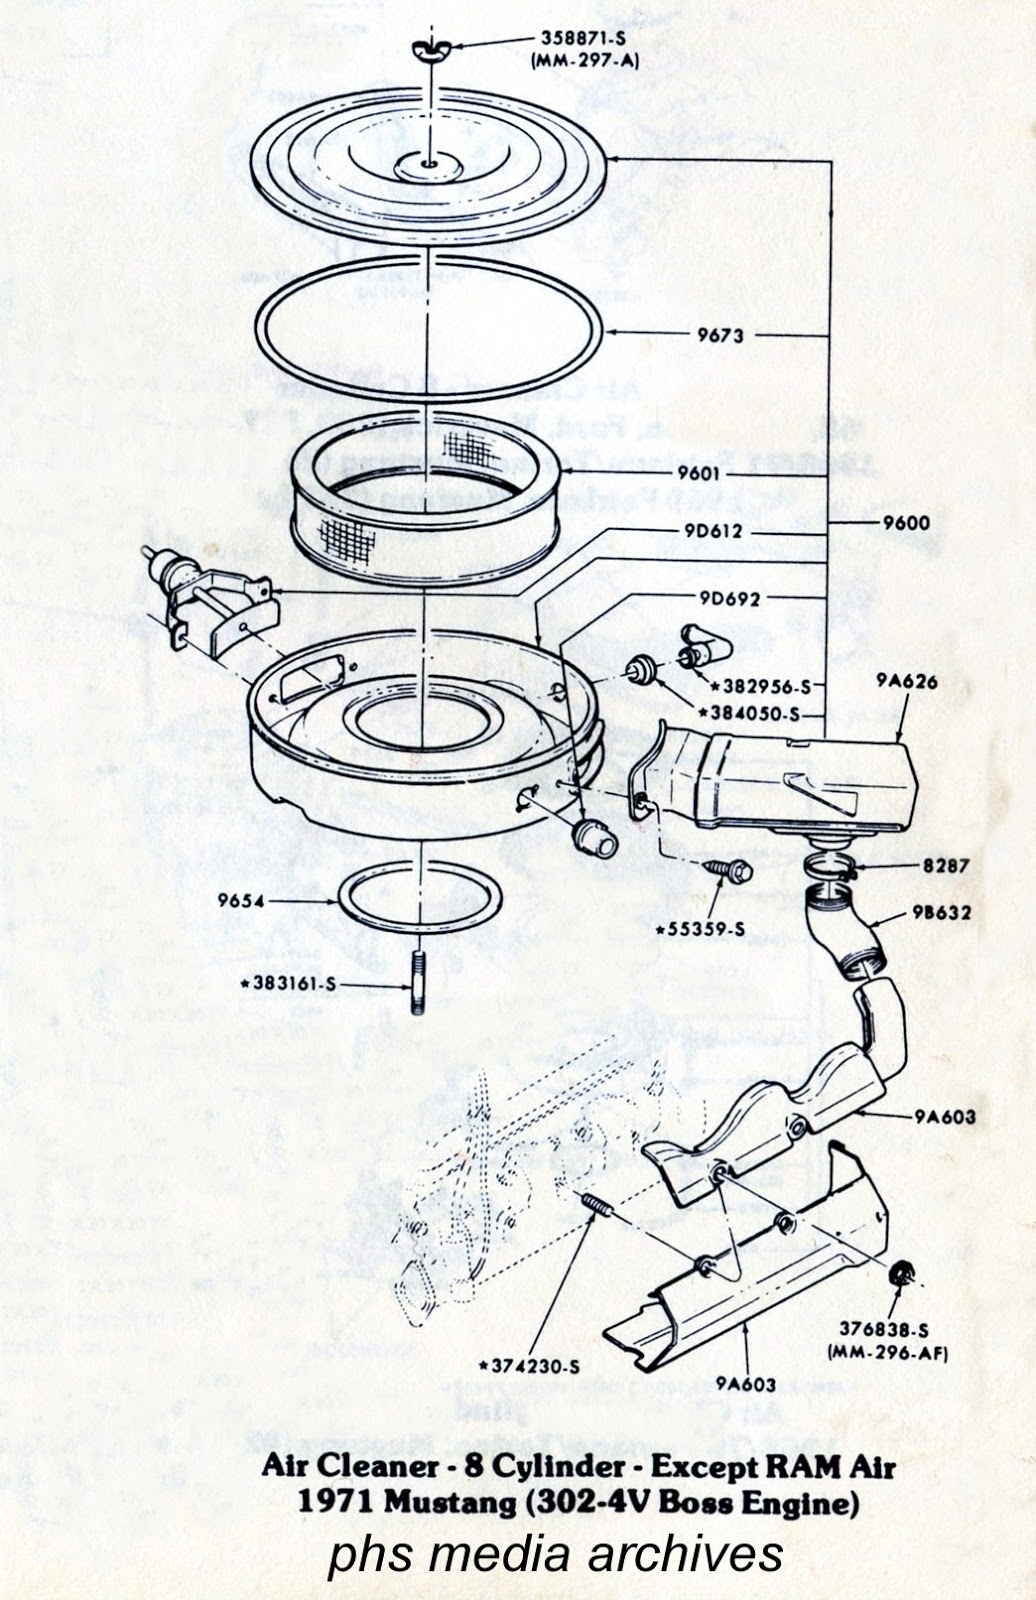 the base six cylinder 250 cid air cleaner unit for the 1971 model specific model year is not shown we have included an engine diagram which has the air  [ 1036 x 1600 Pixel ]